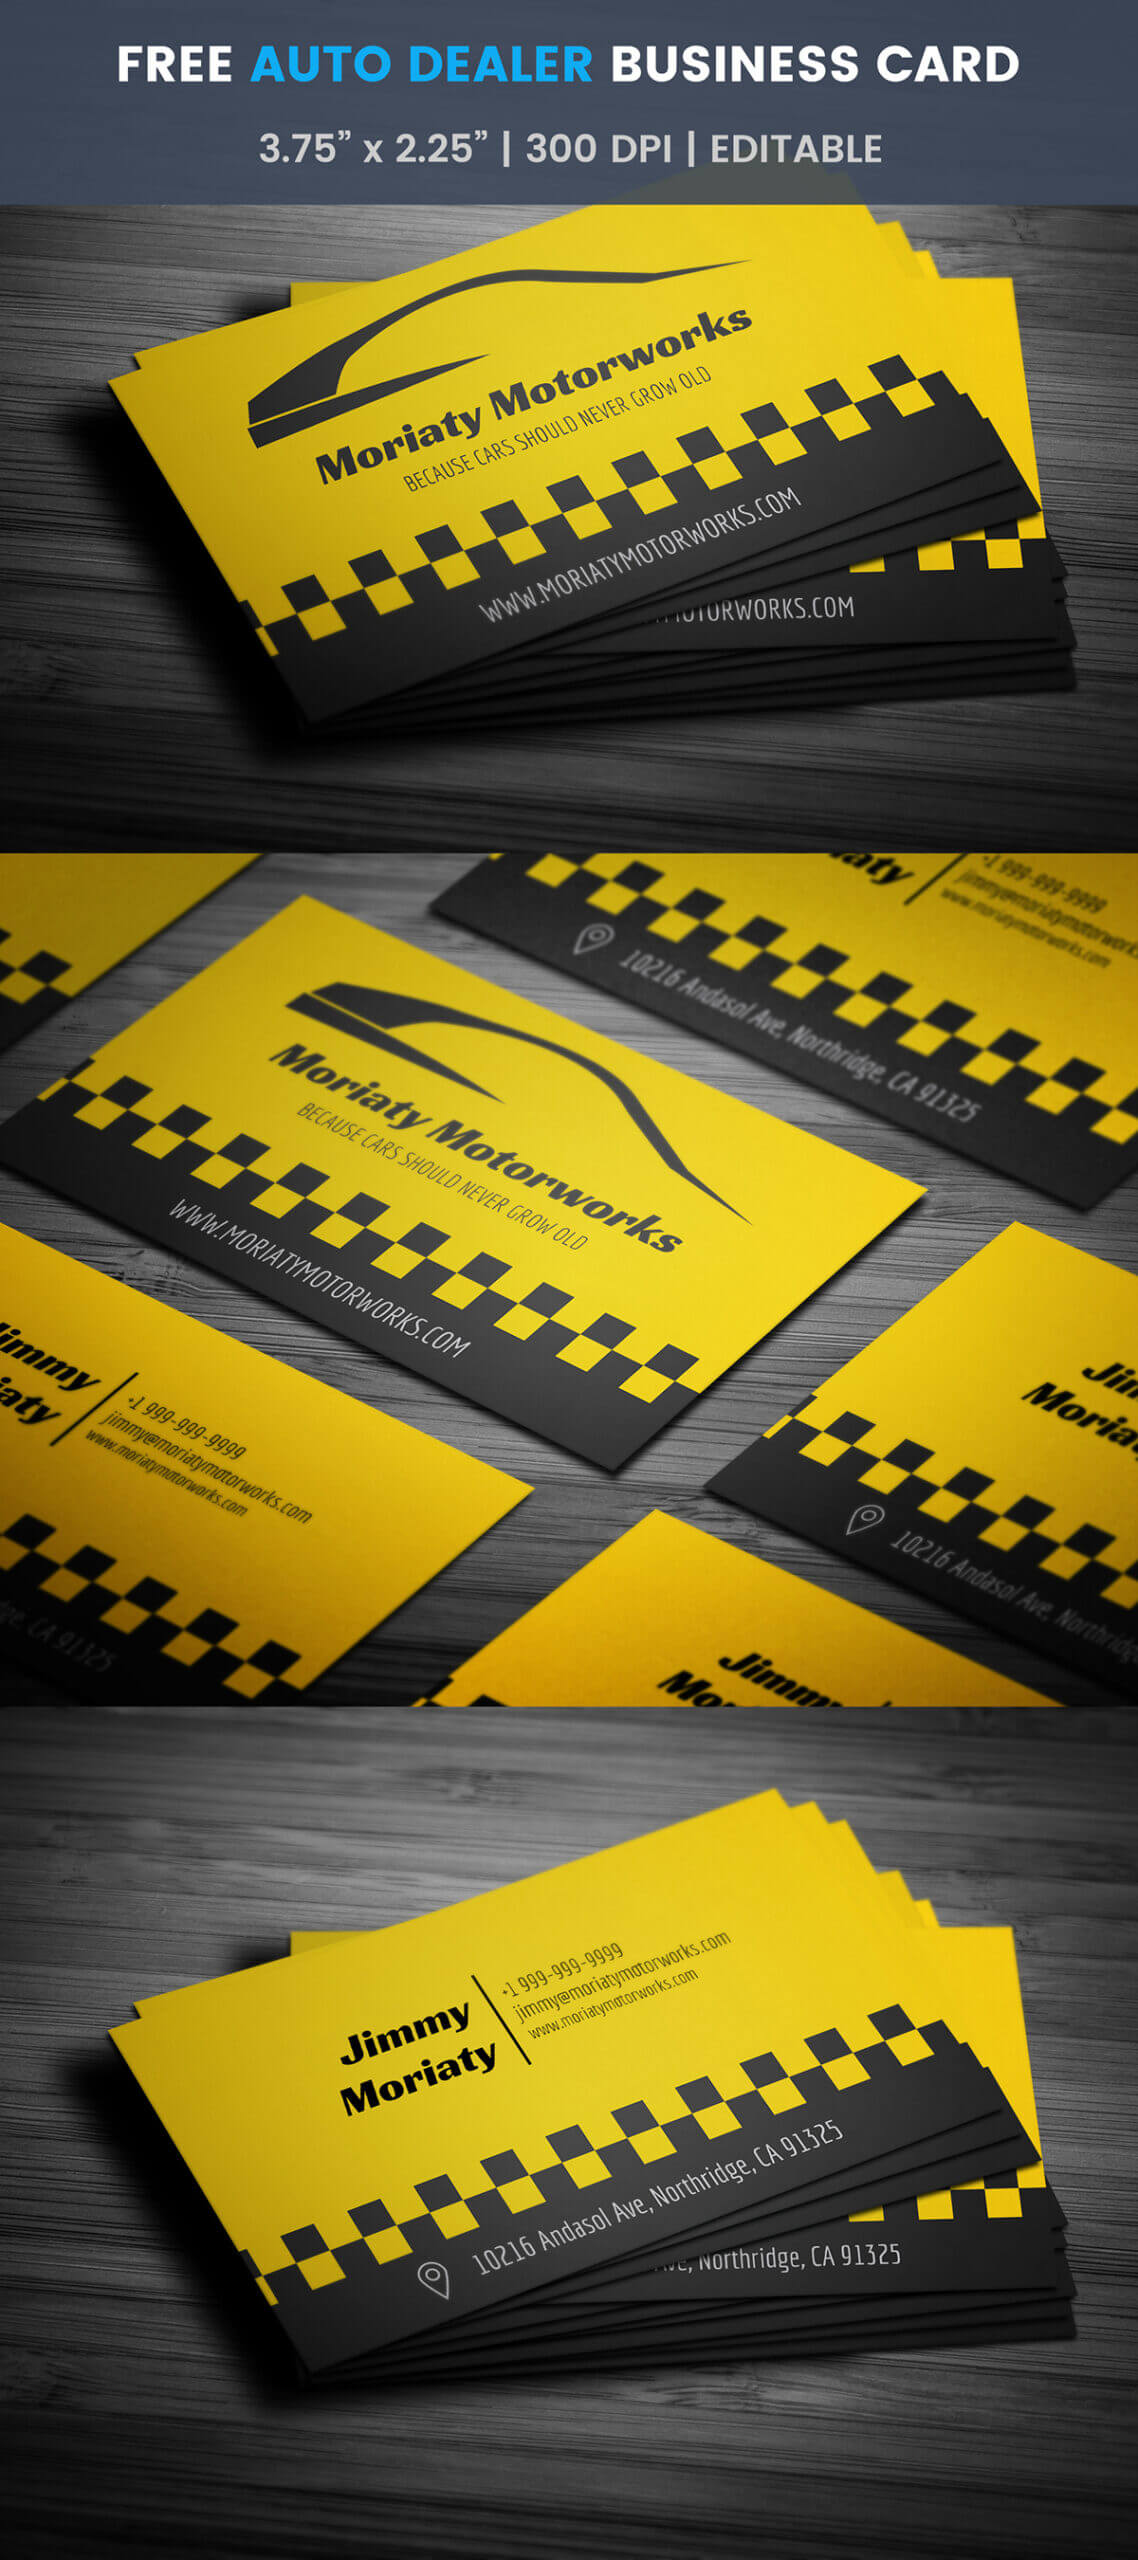 Free Automotive Business Card Template On Student Show Throughout Automotive Business Card Templates